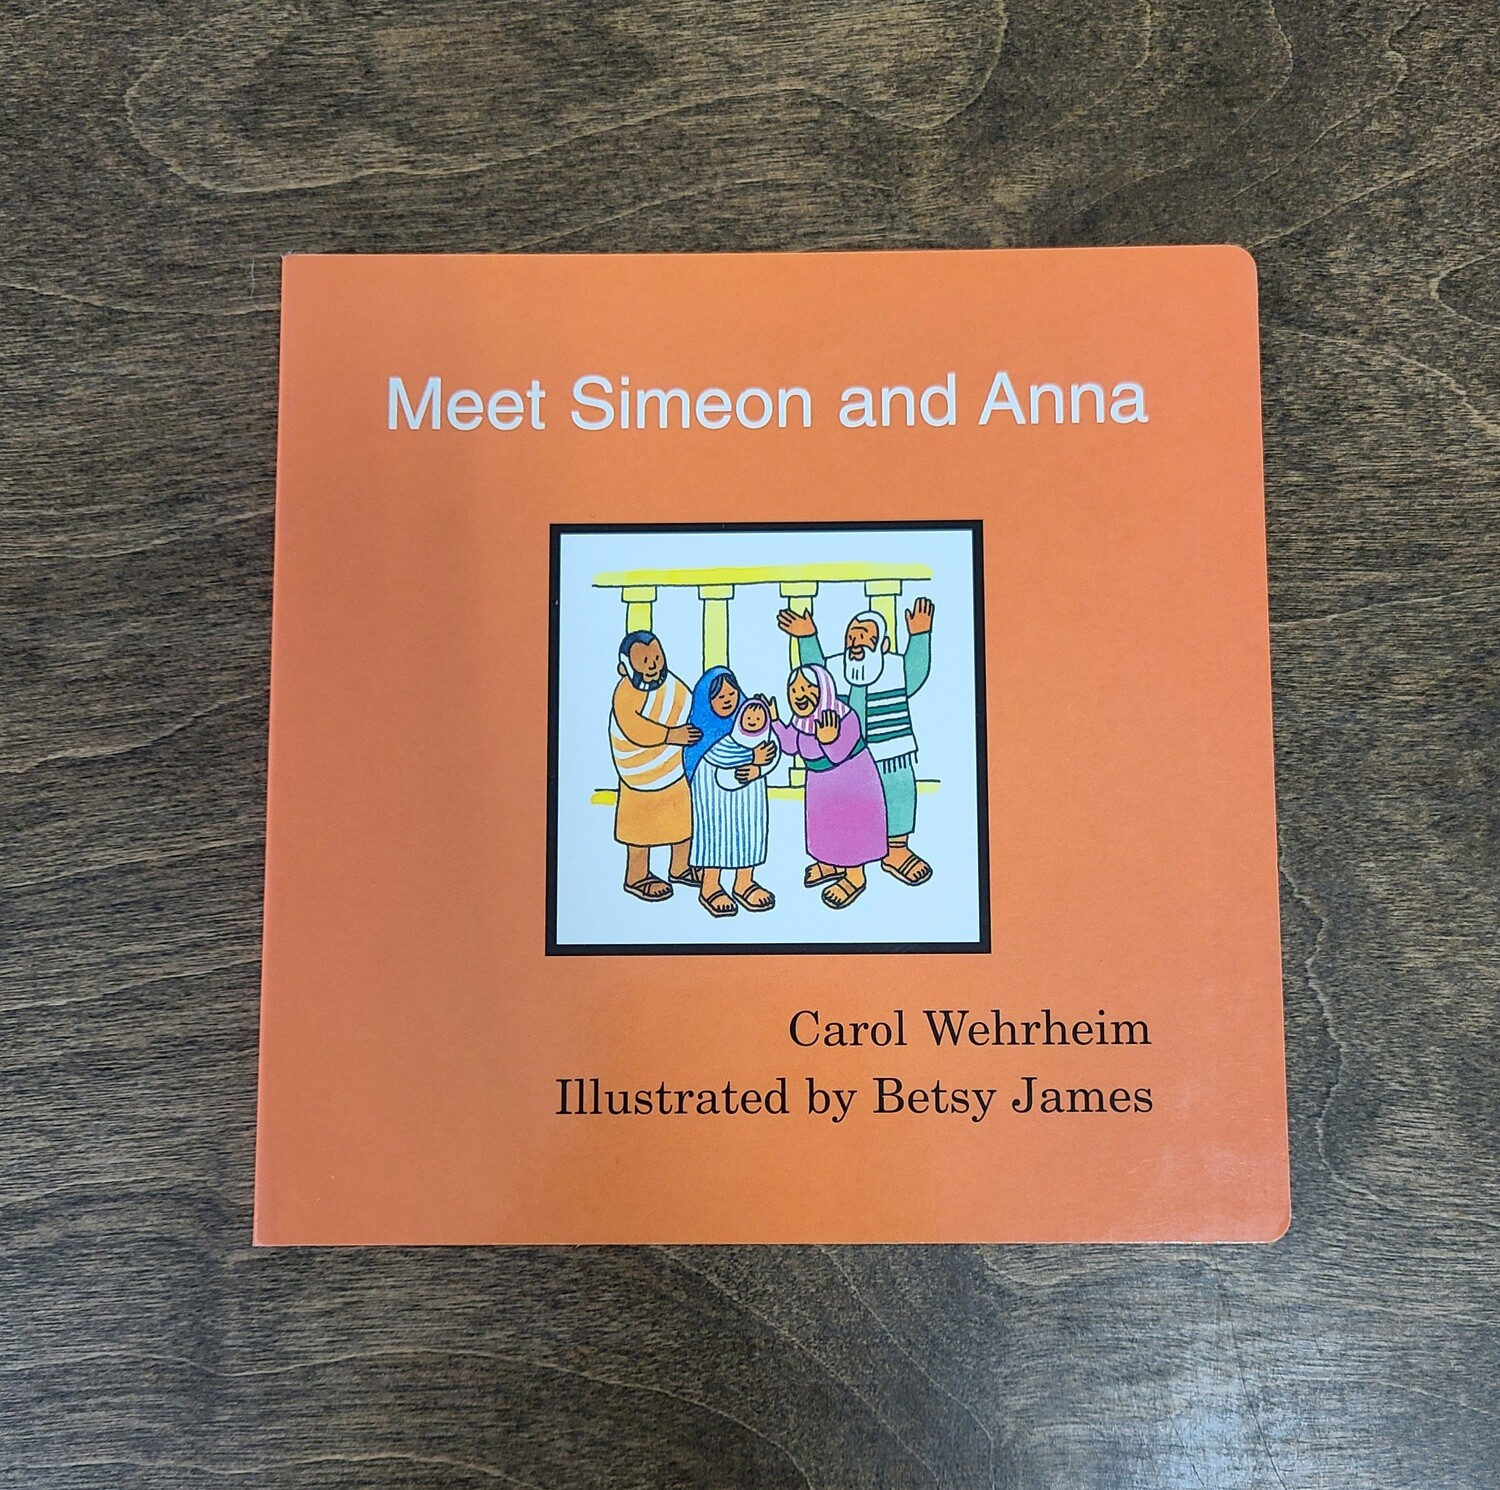 Meet Simeon and Anna by Carol Wehrheim and Betsy James